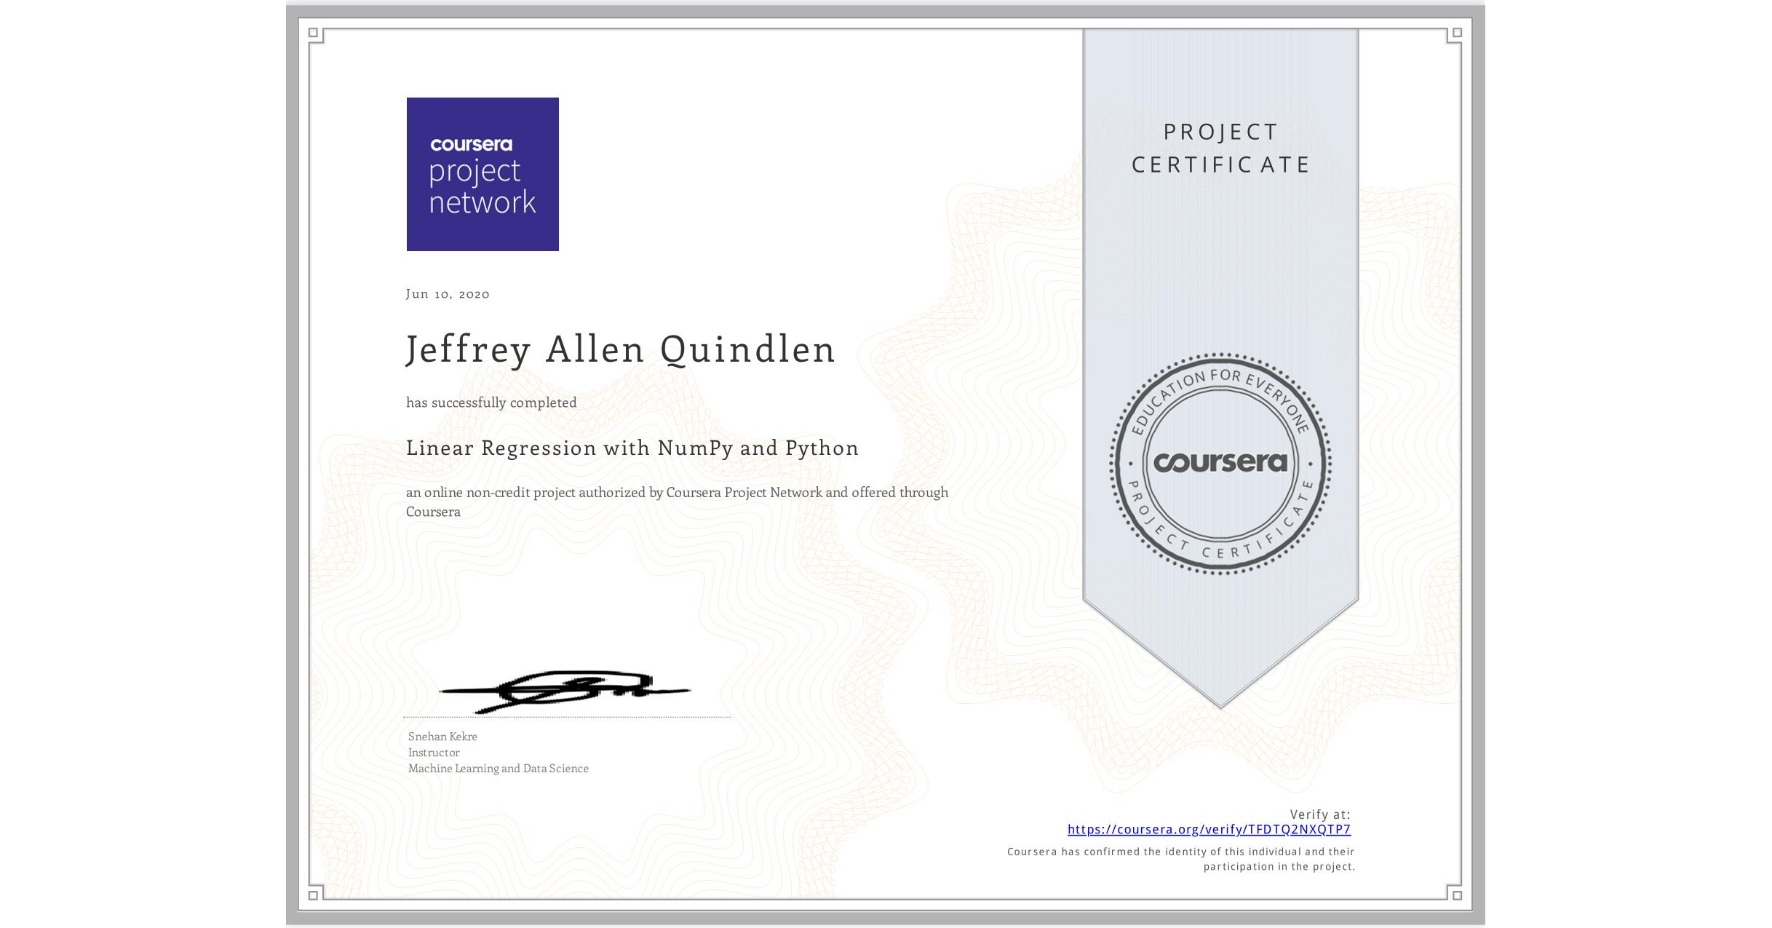 View certificate for Jeffrey Allen Quindlen, Linear Regression with NumPy and Python, an online non-credit course authorized by Coursera Project Network and offered through Coursera